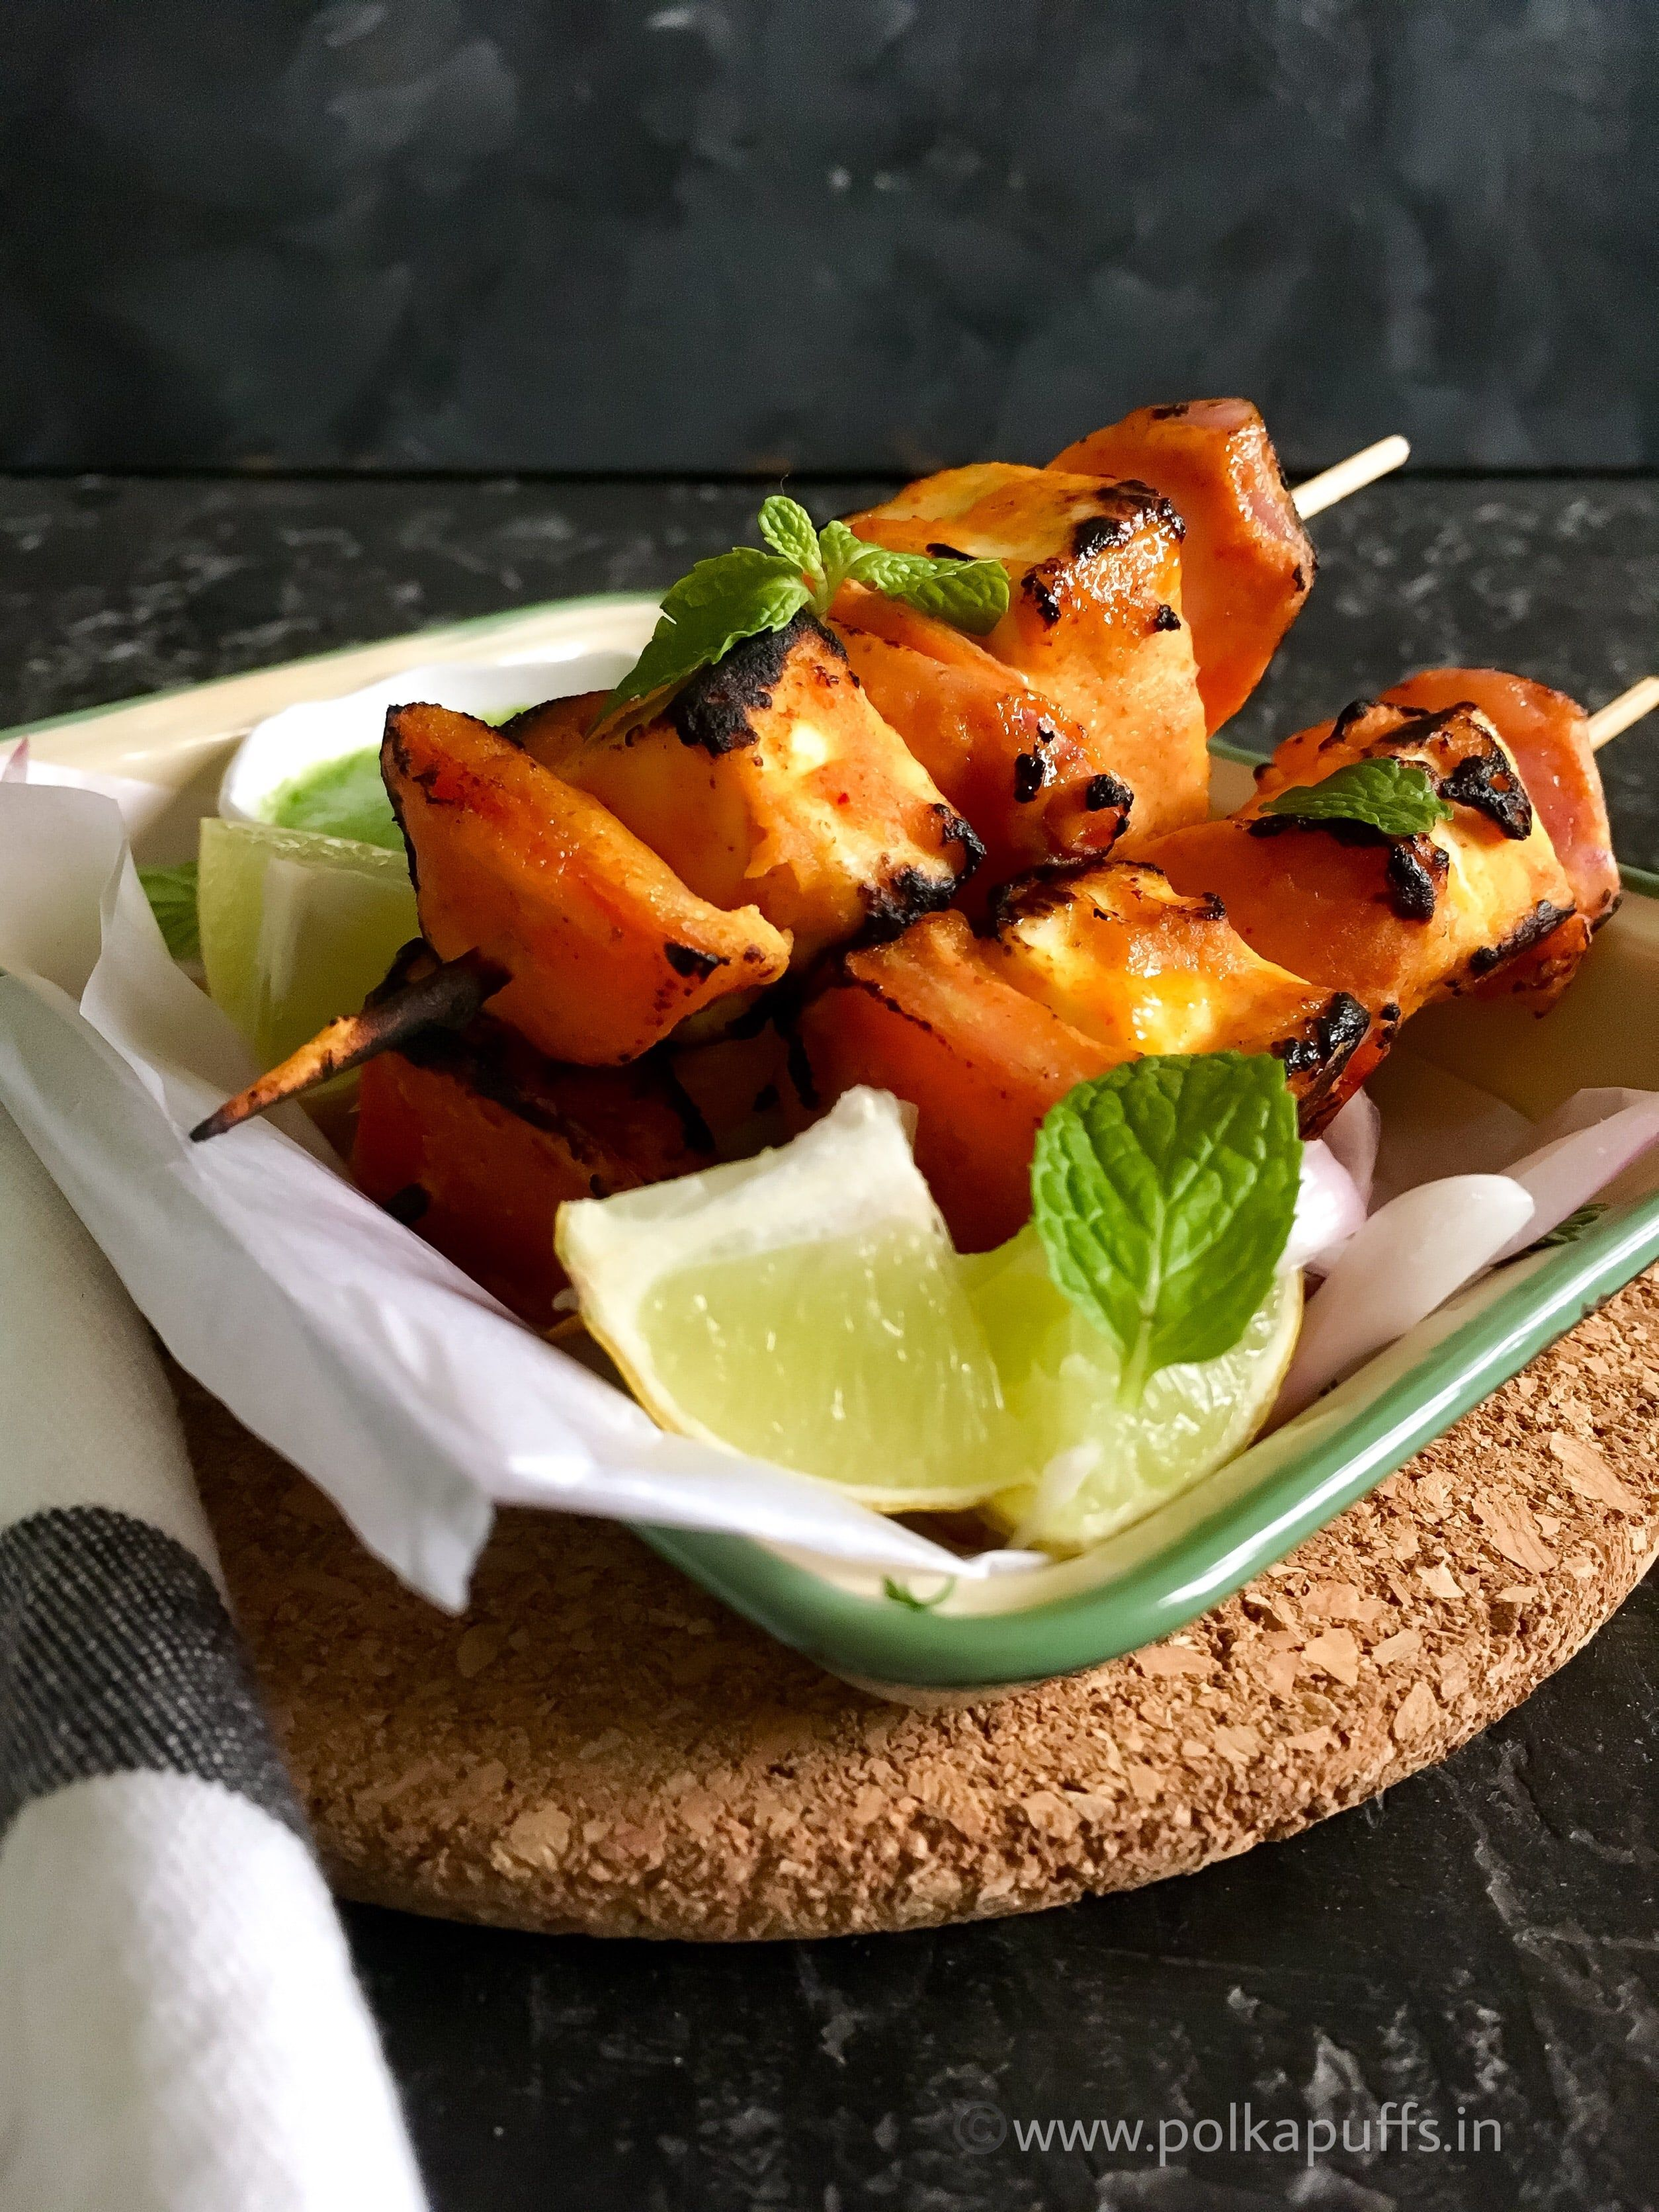 Restaurant Style Paneer Tikka - Stove Top Method Is A